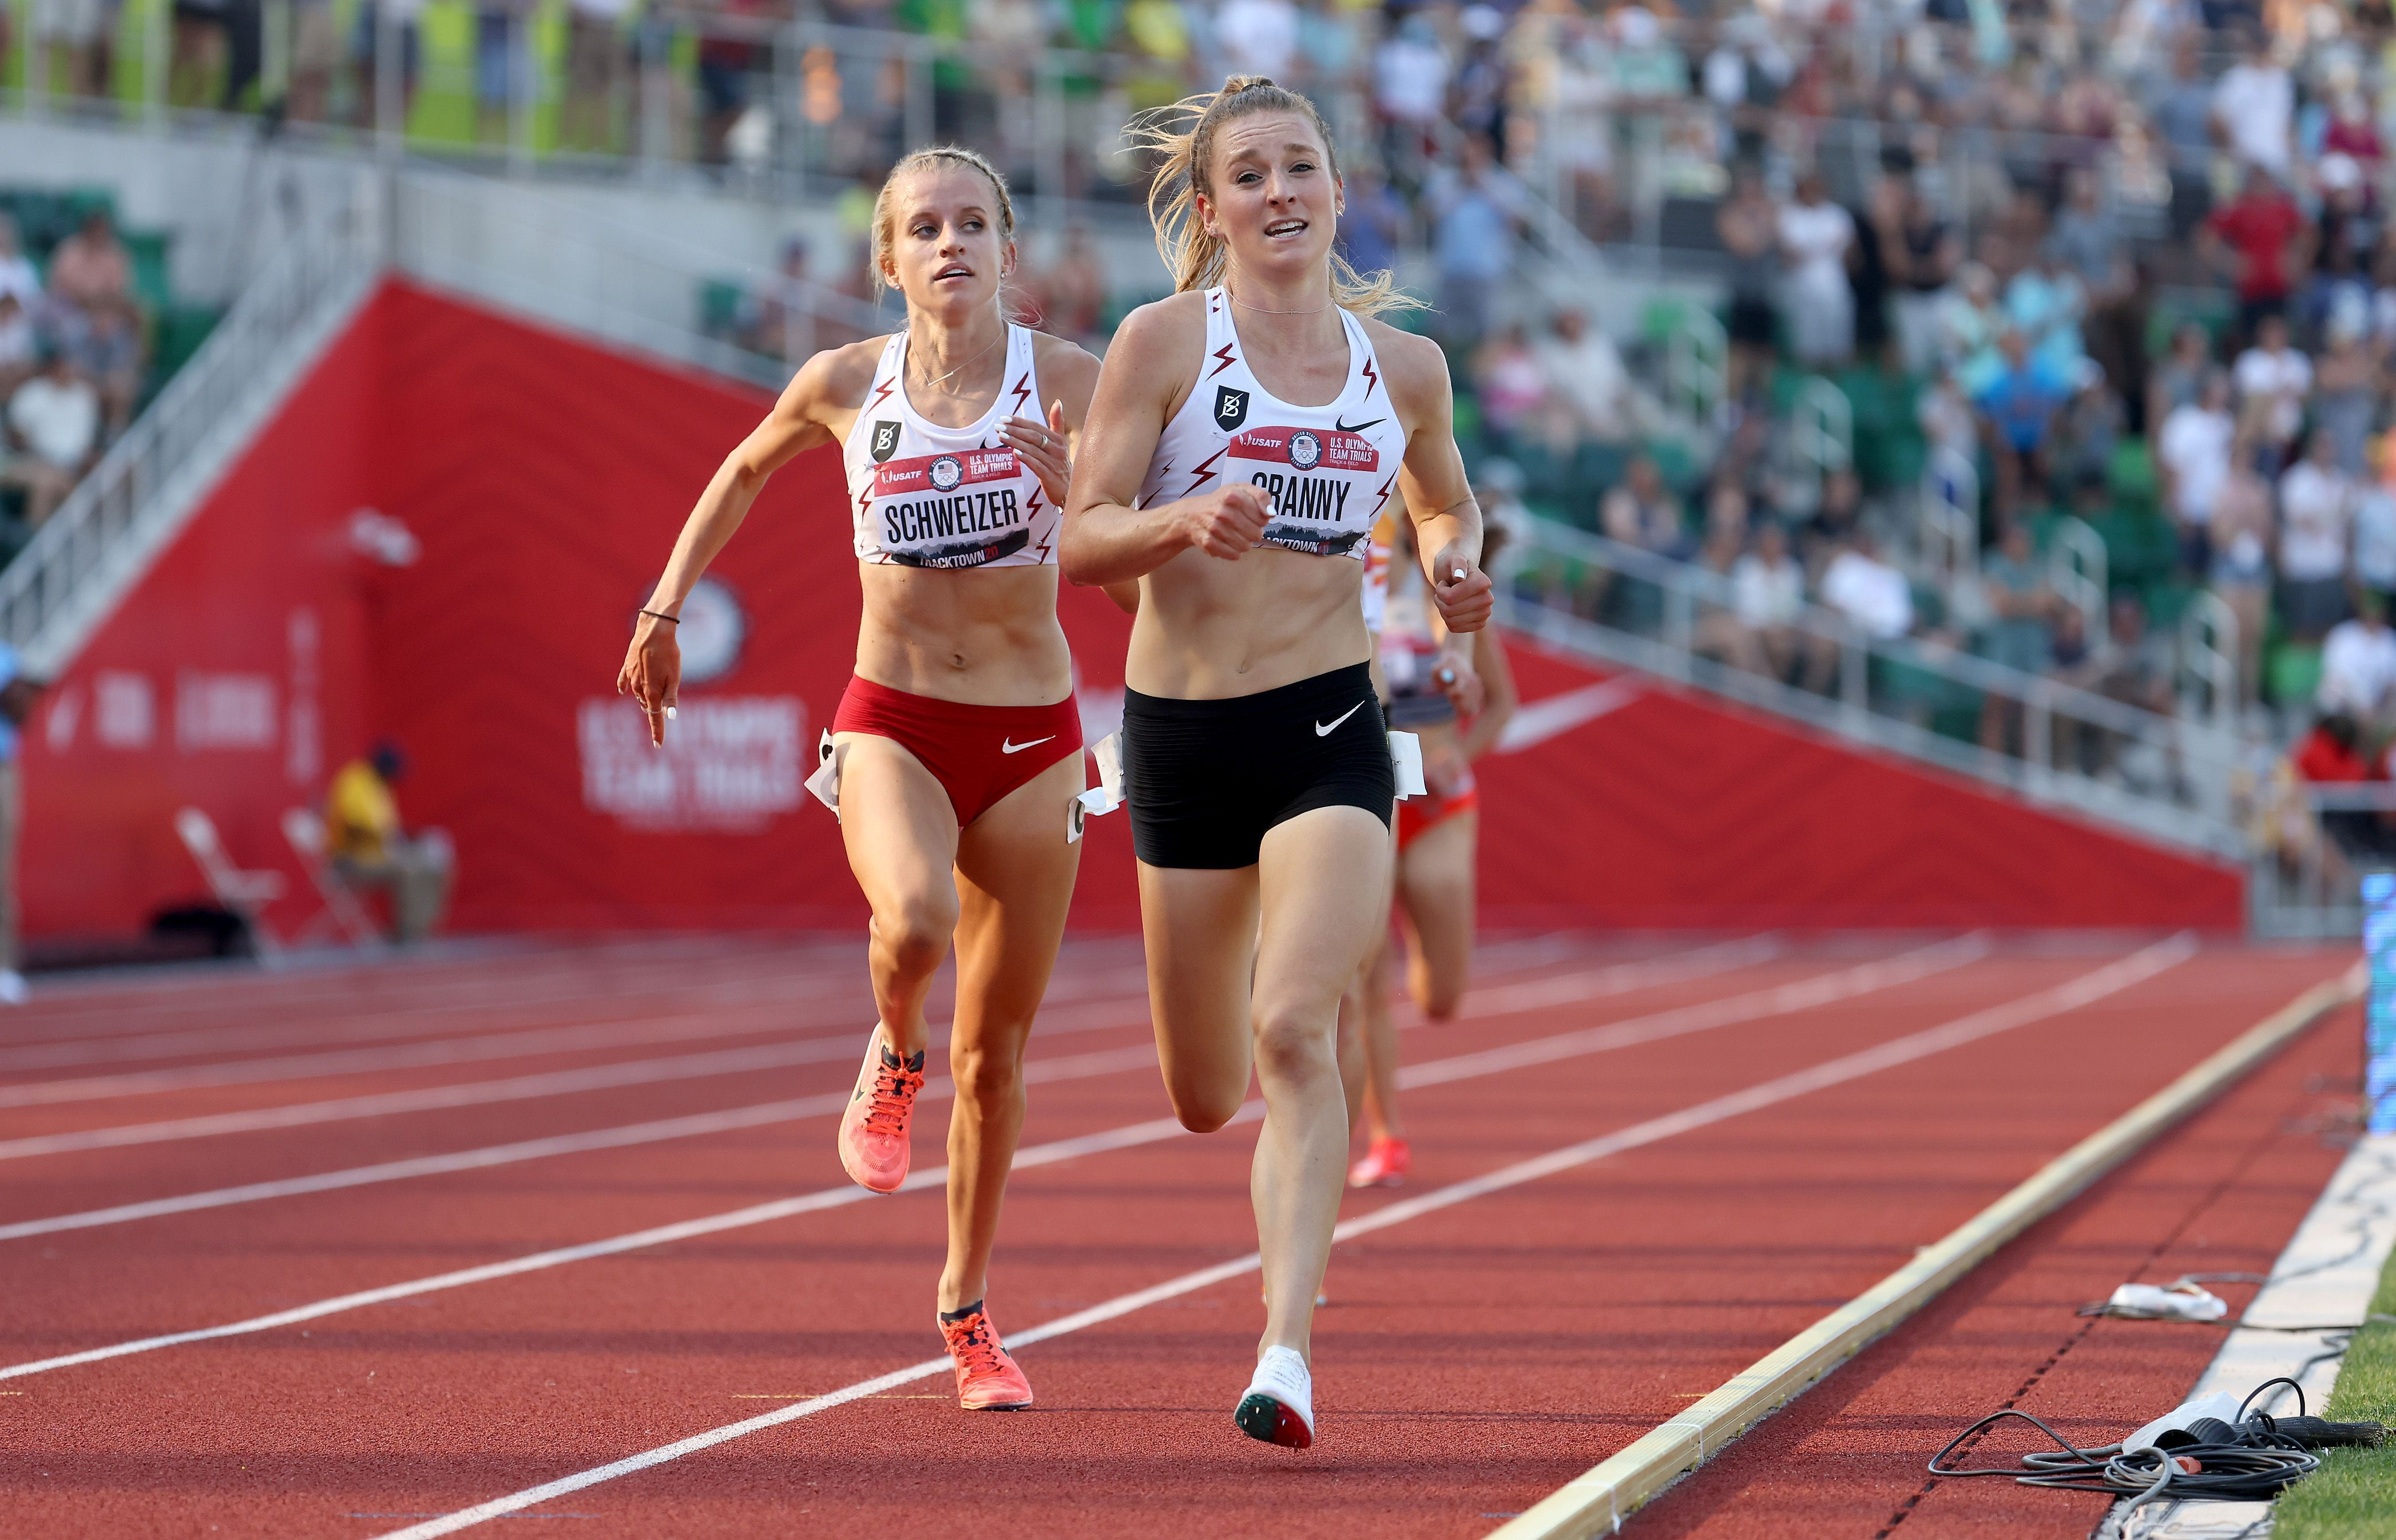 Elise Cranny, front, runs the 5000-meter at the U.S. team trials in June. Photo: Andy Lyons/Getty Images